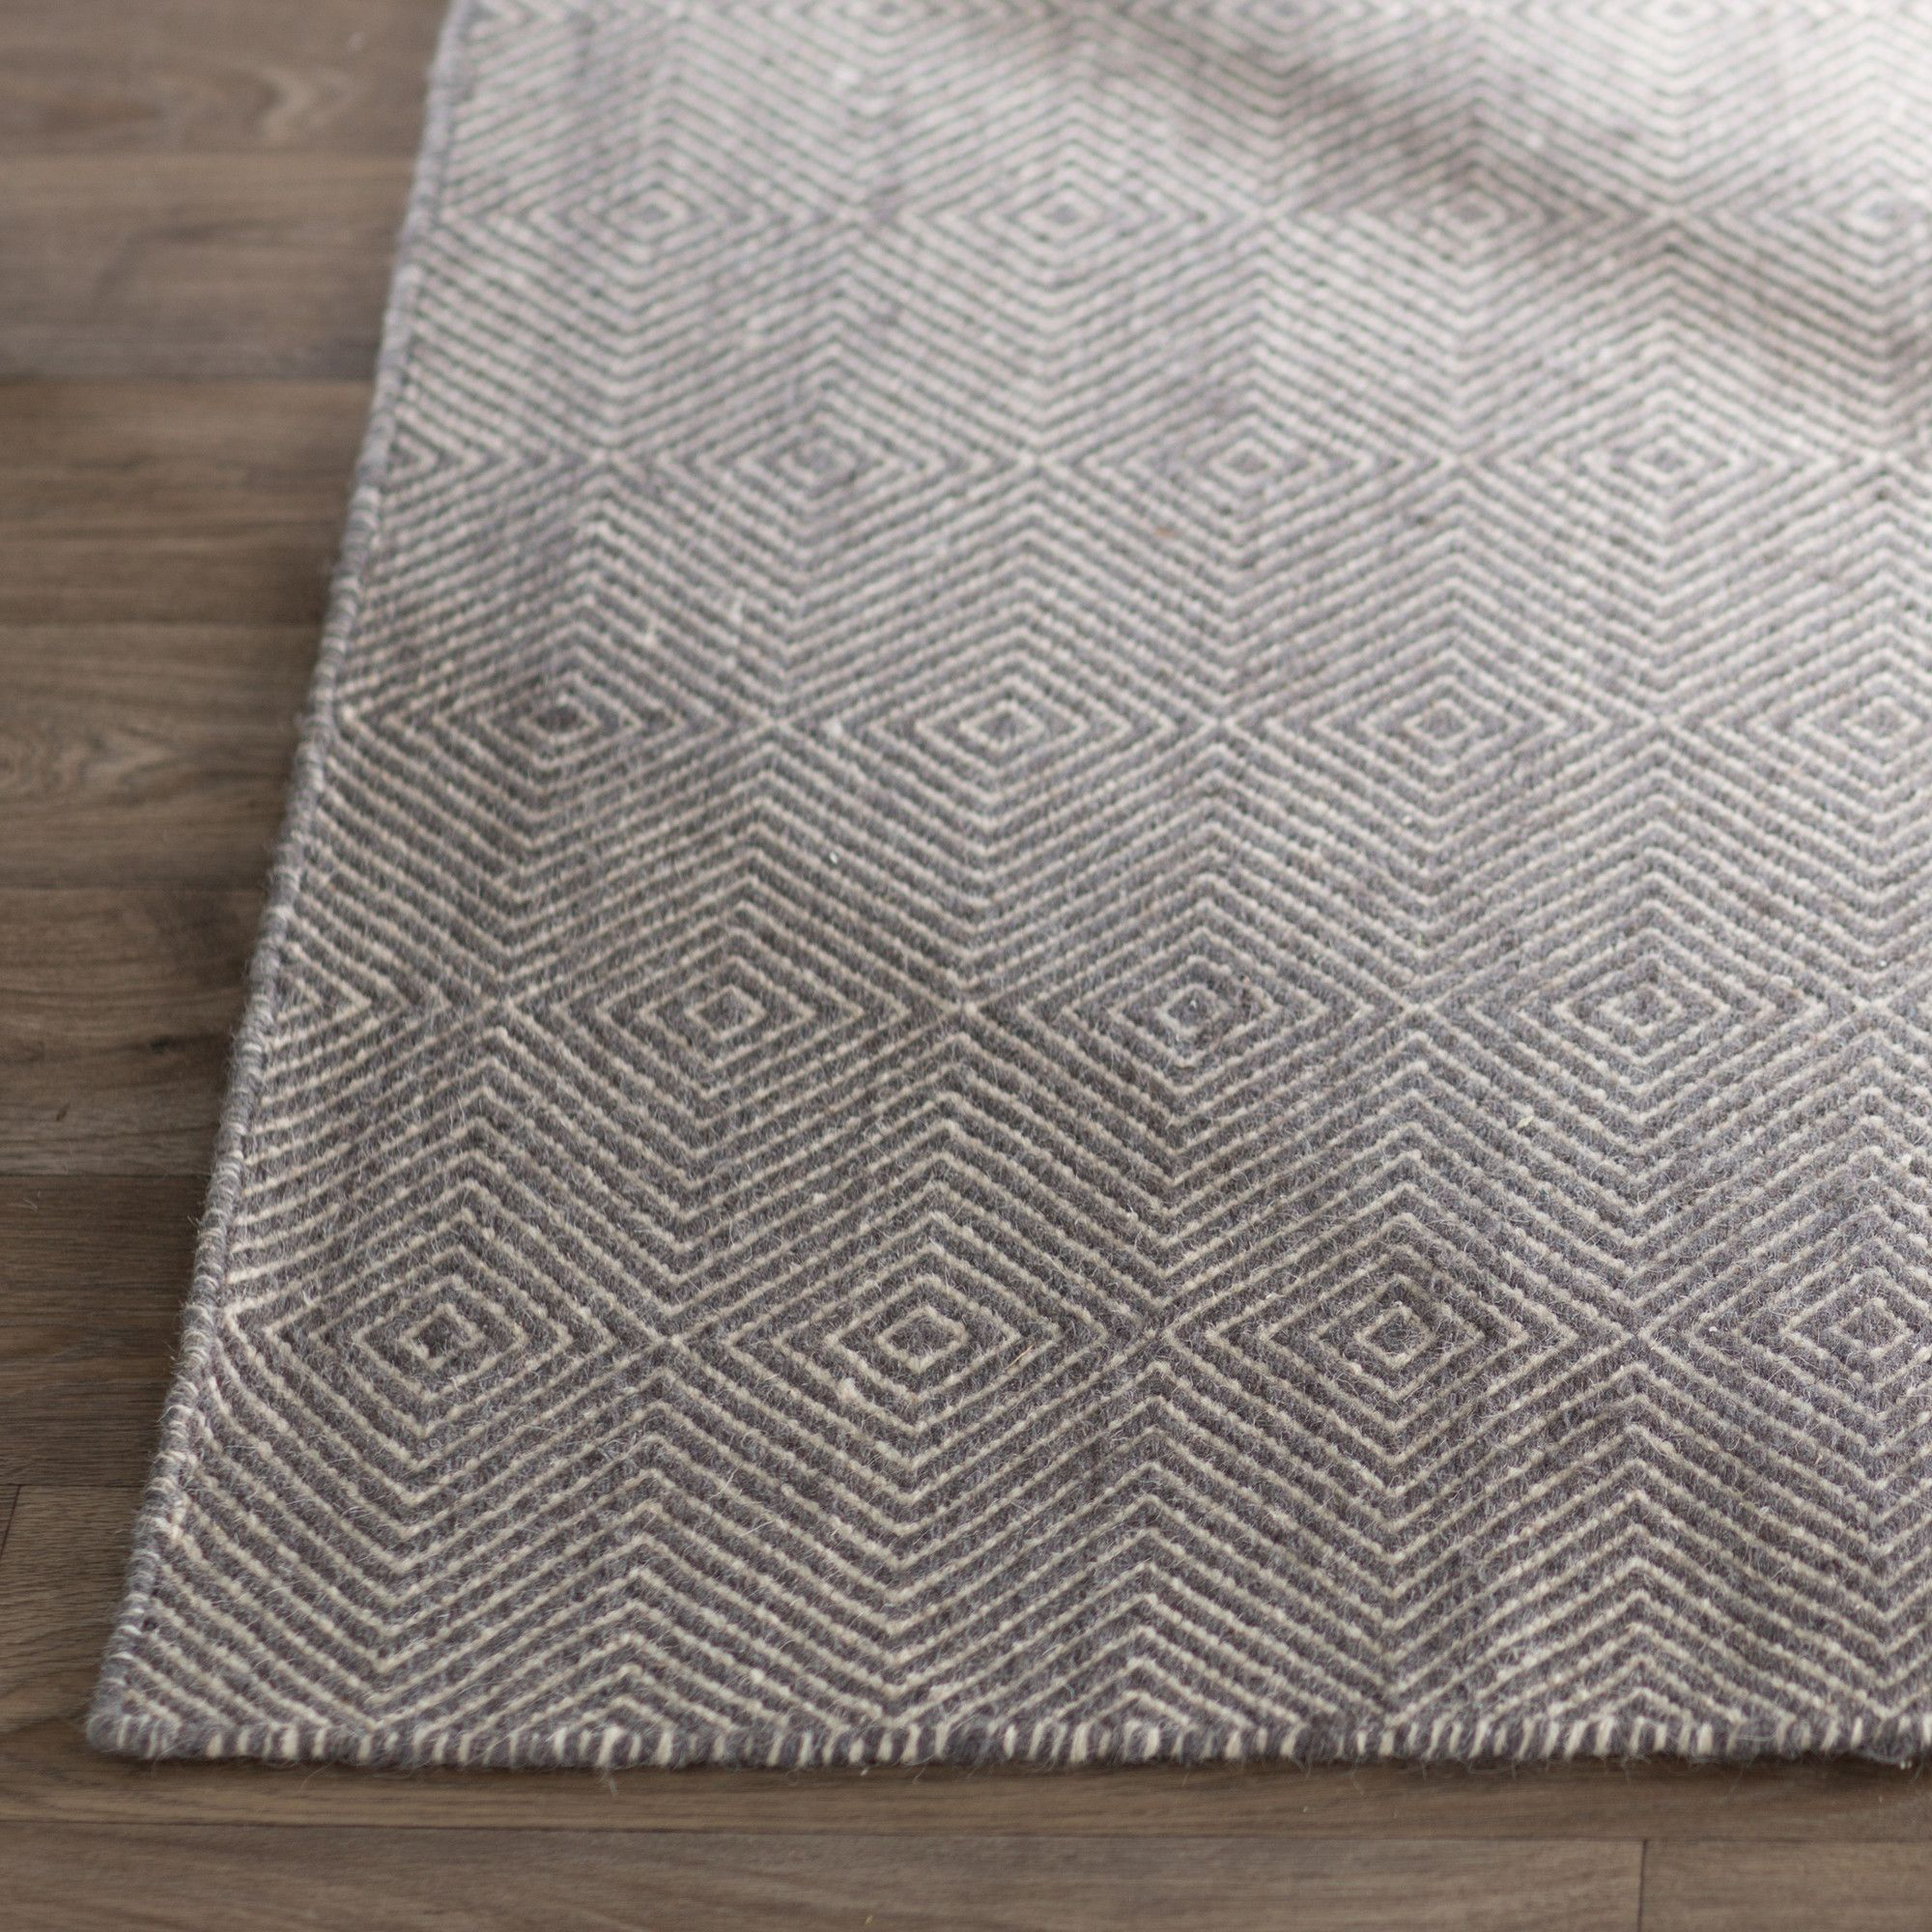 You Ll Love The Marcelo Flat Woven Gray Area Rug At Allmodern With Great Deals On Modern Décor Products And Free Shipping Most Stuff